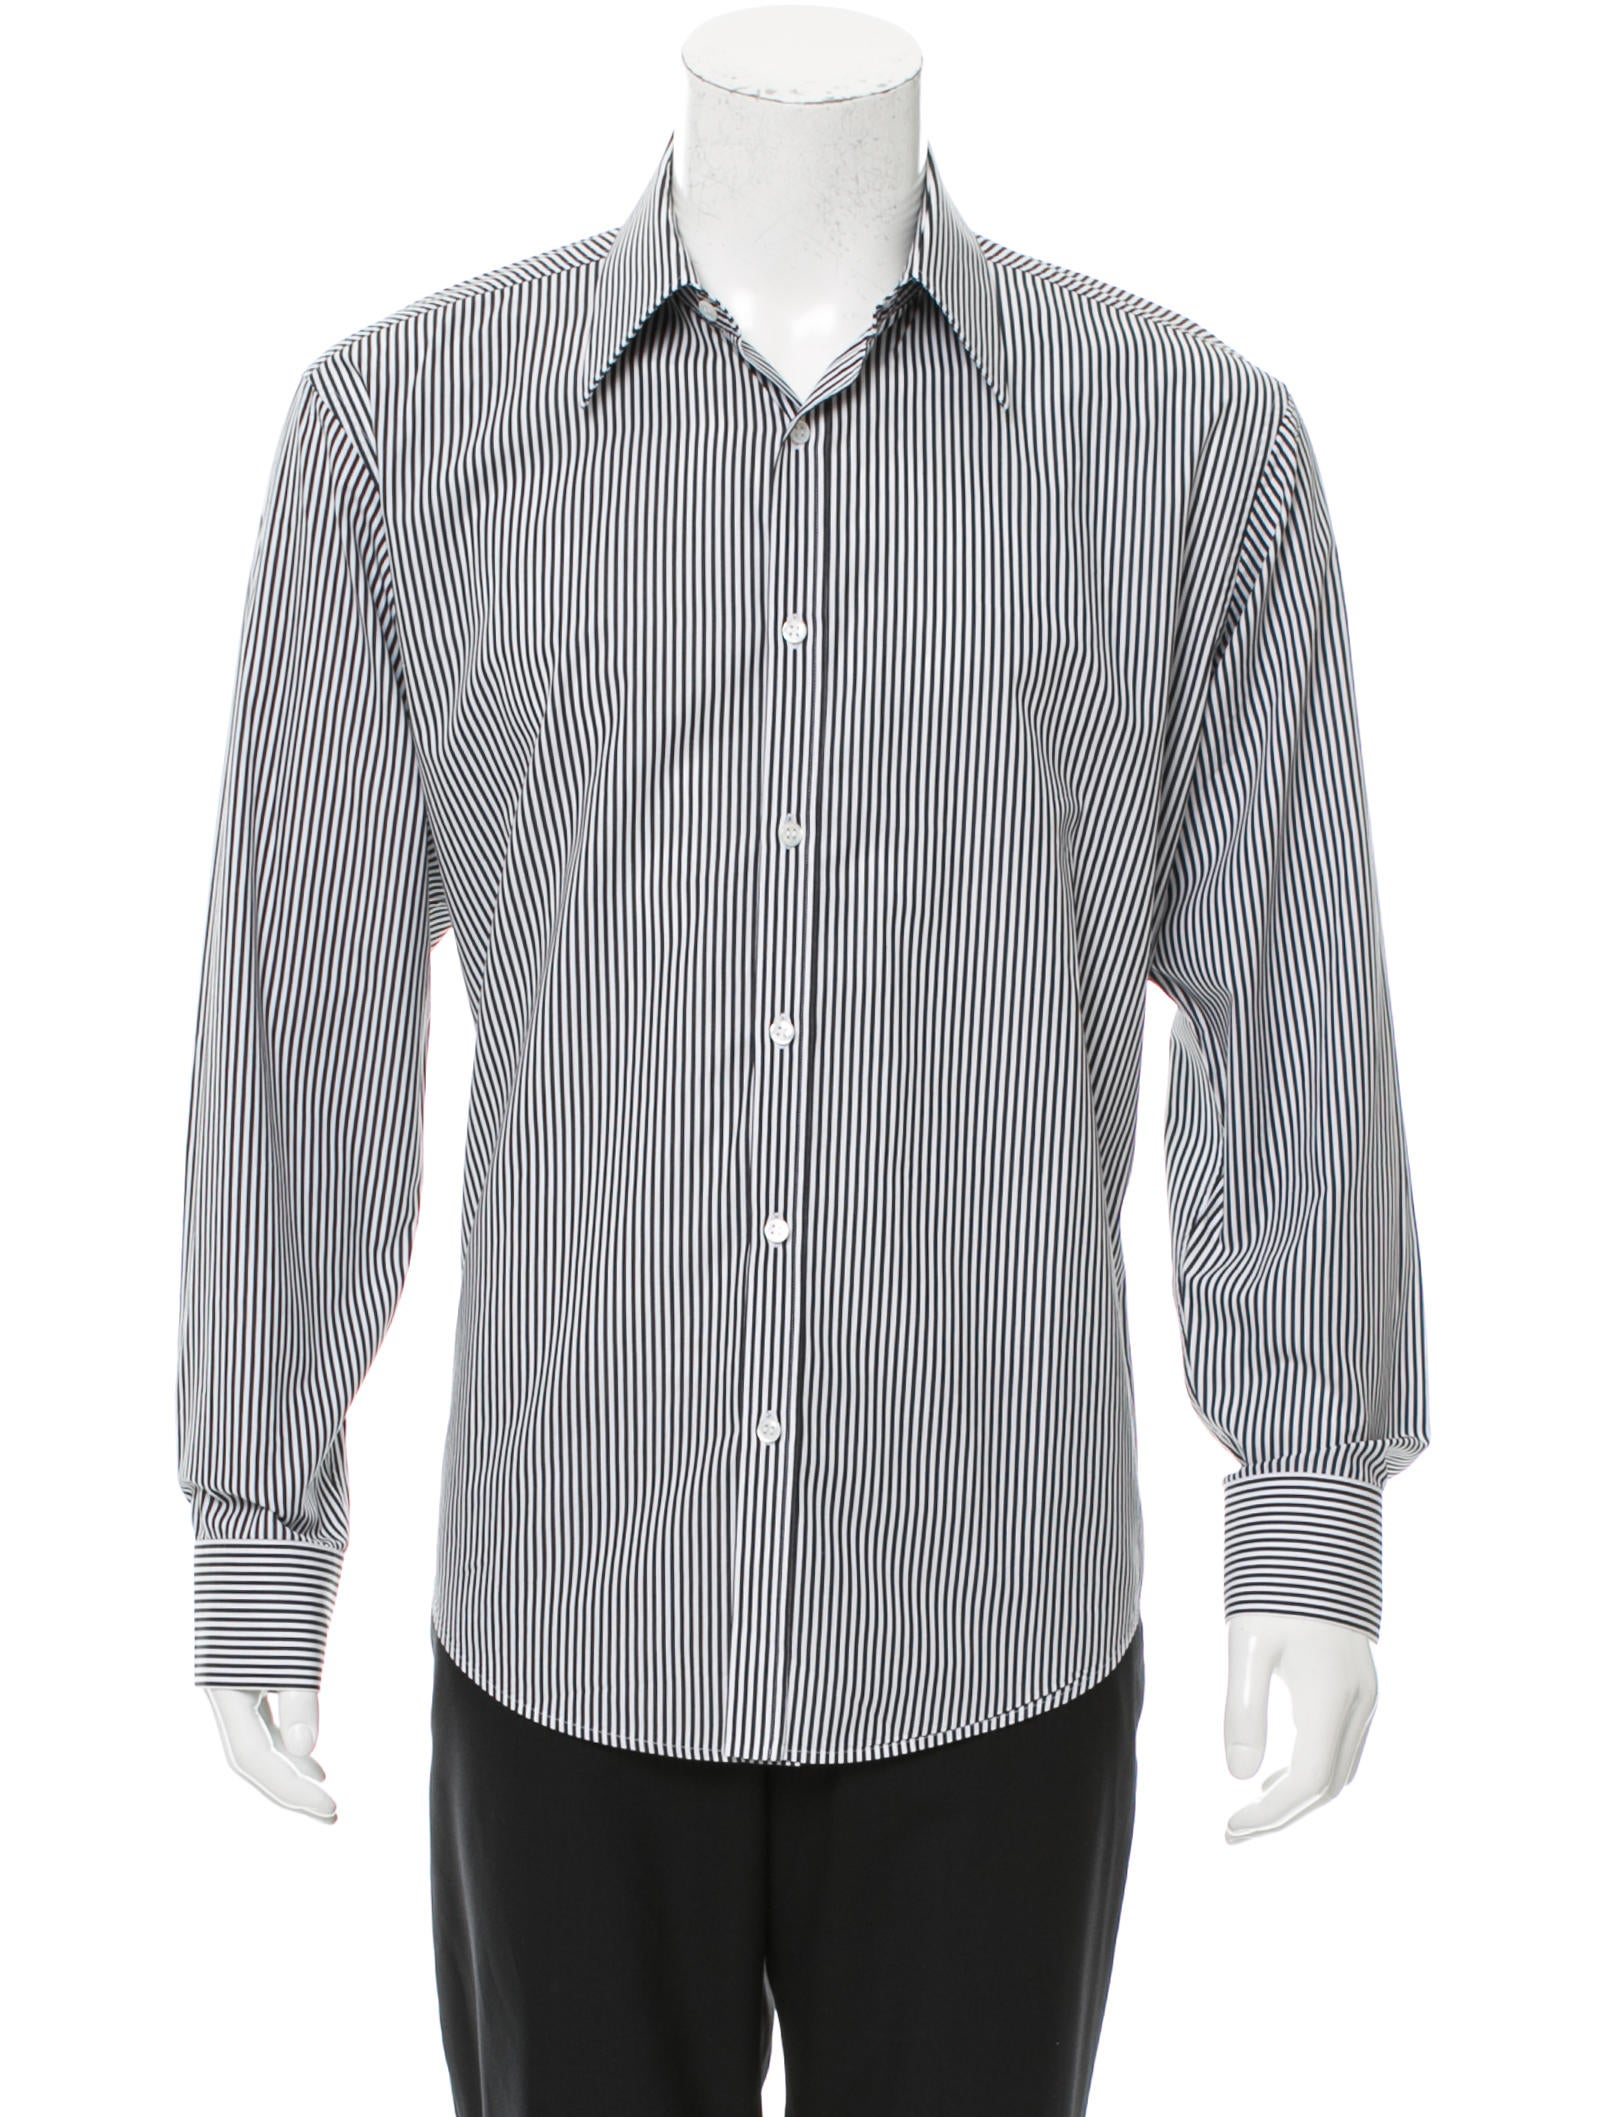 Yves Saint Laurent Striped Button Up Shirt Clothing